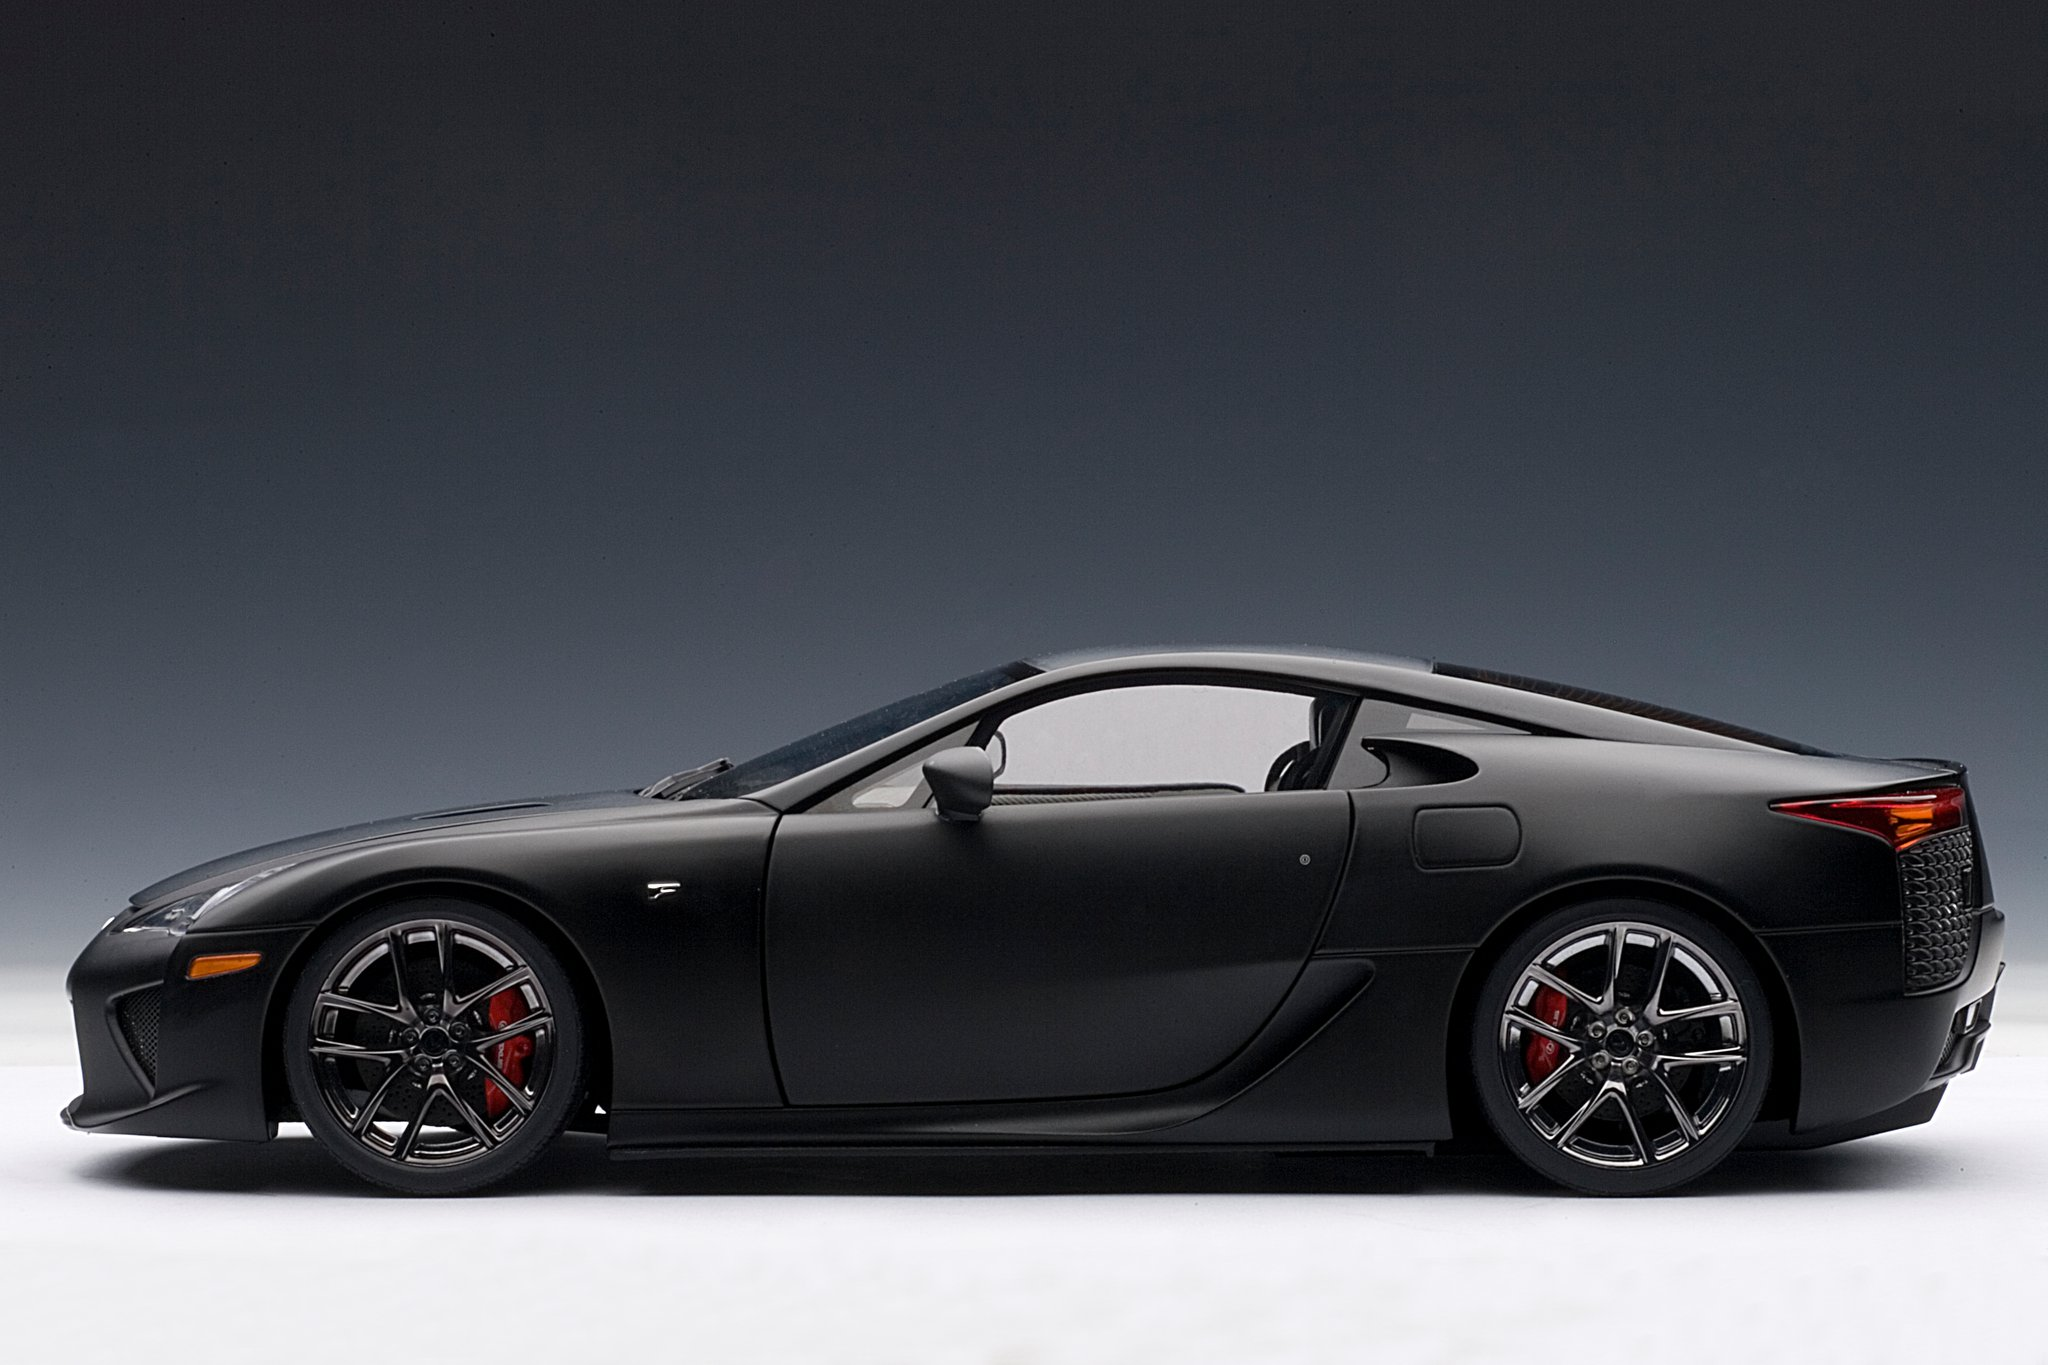 Matte Black Lexus Lfa Die Cast Model By Autoart Lexus